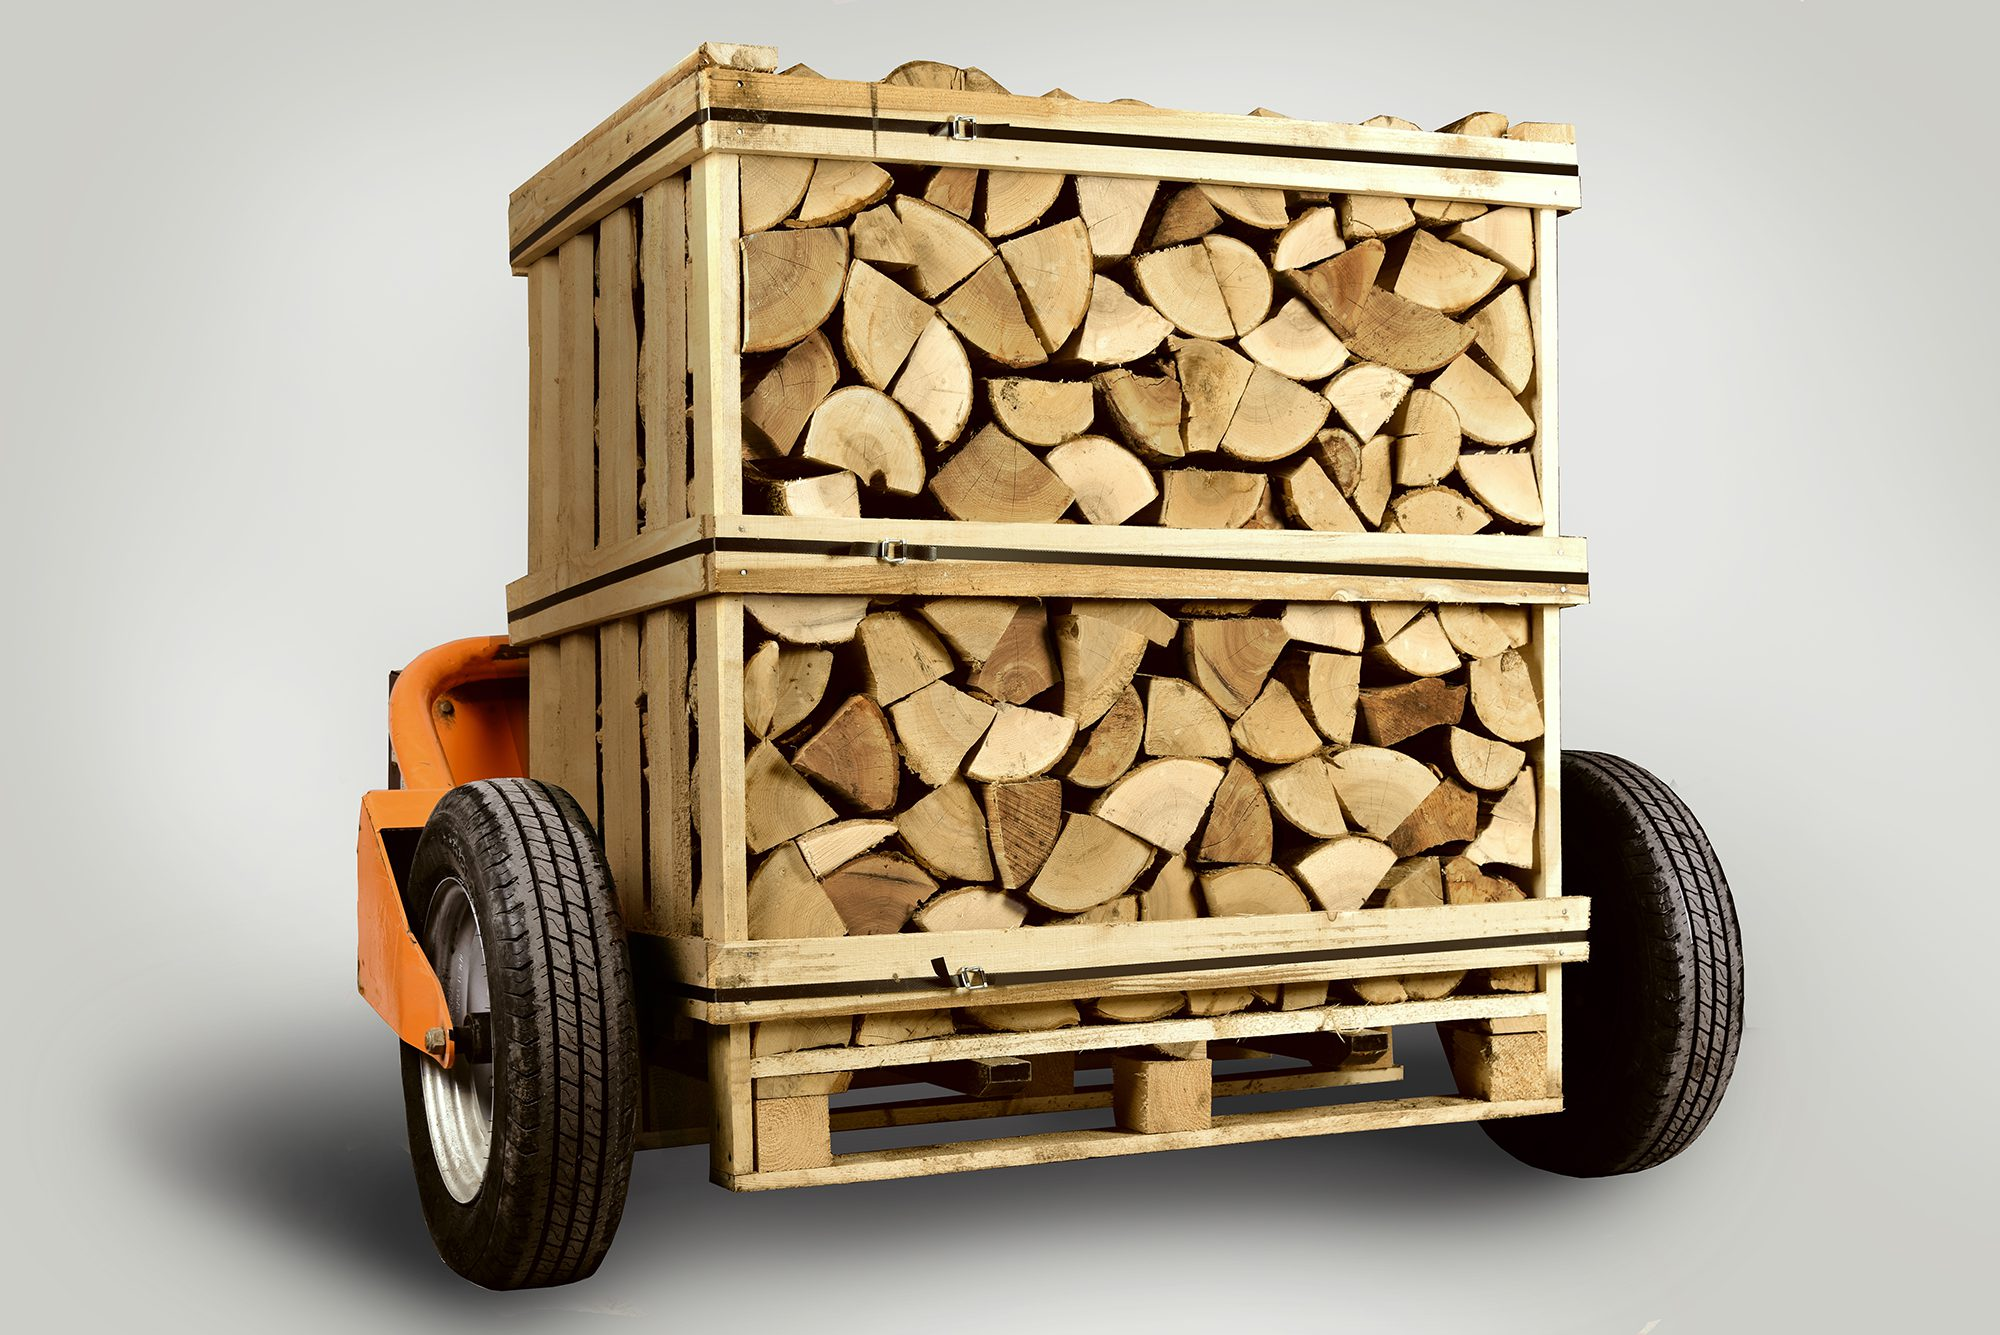 Birch Hardwood Logs - 1.2m³